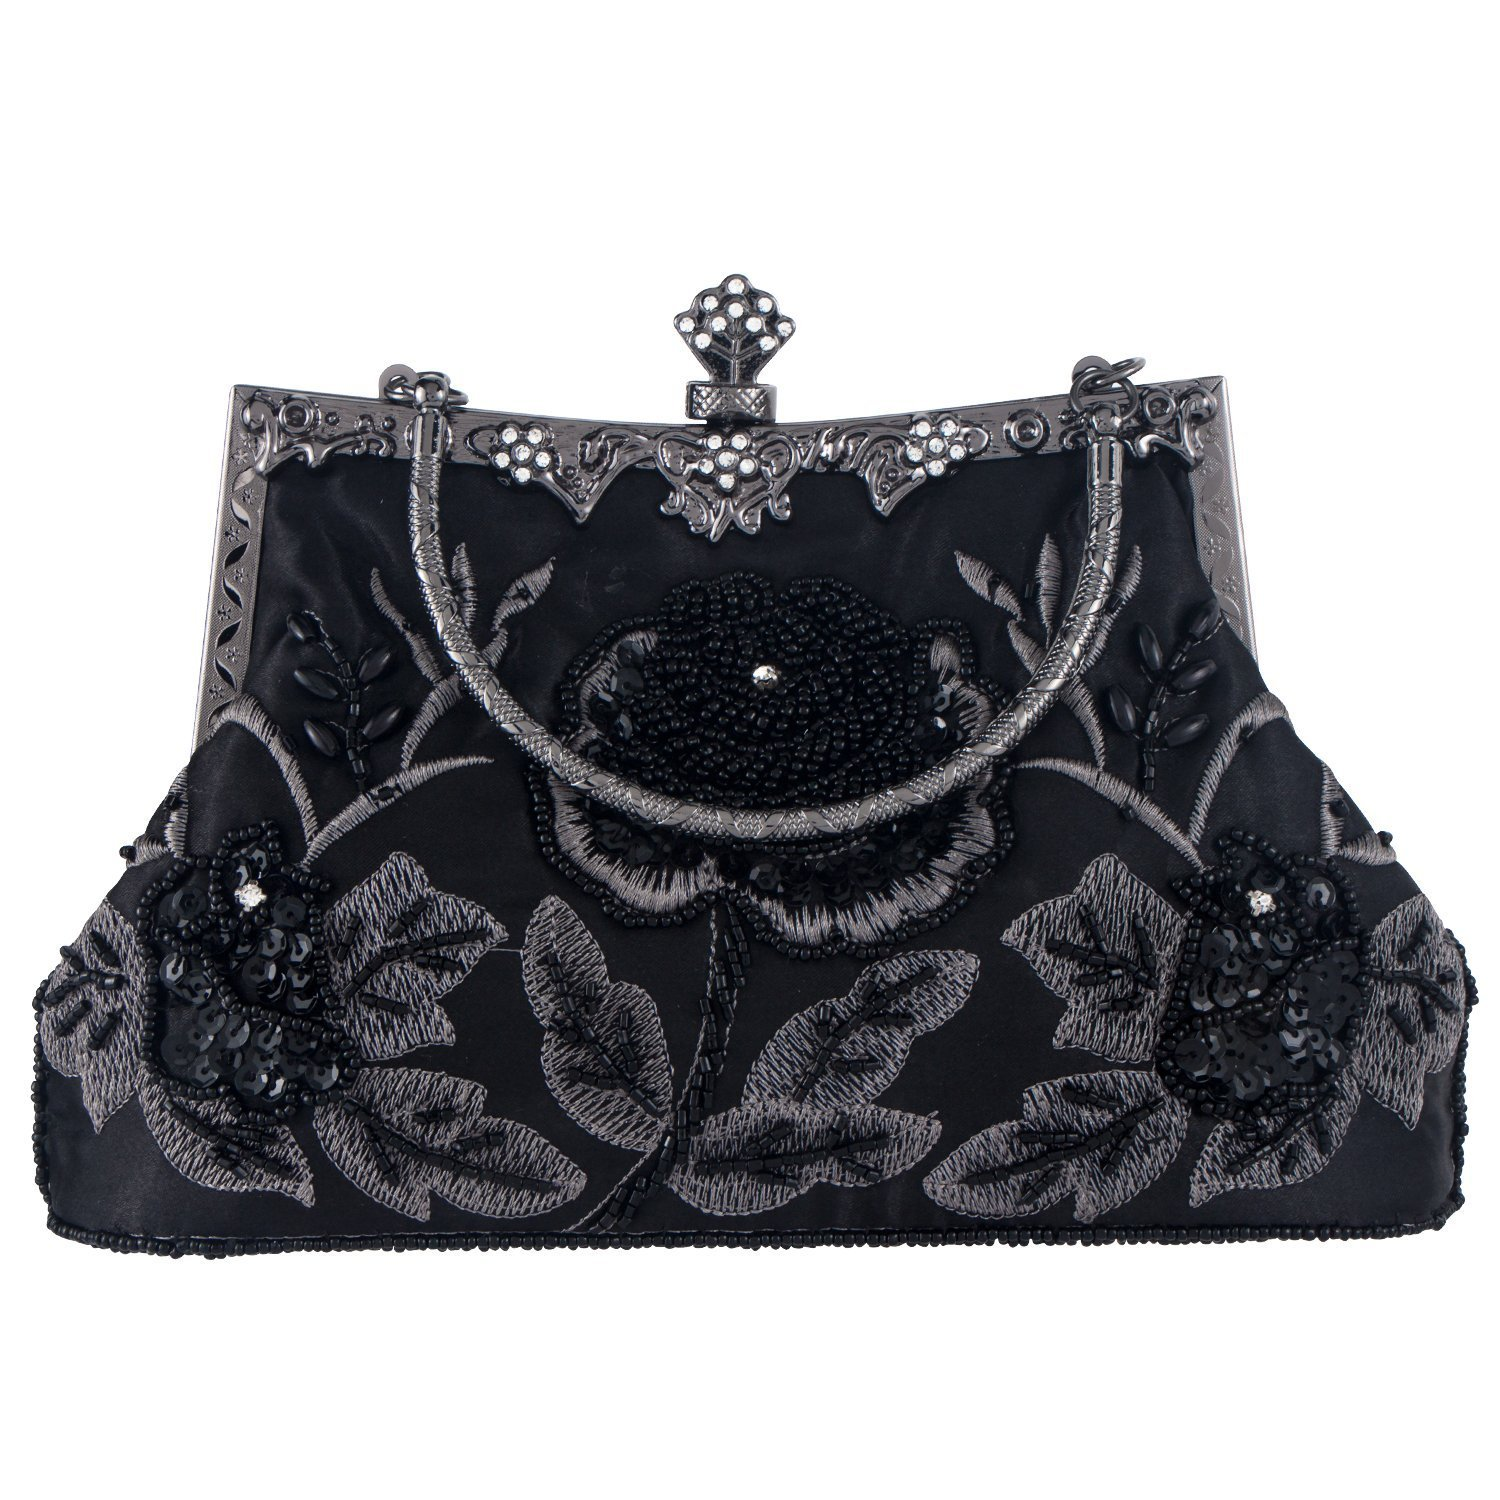 Kaever Women's Vintage Style Beaded and Sequined Roses Evening Clutch Purse Bag Wedding Party Handbag(Black)